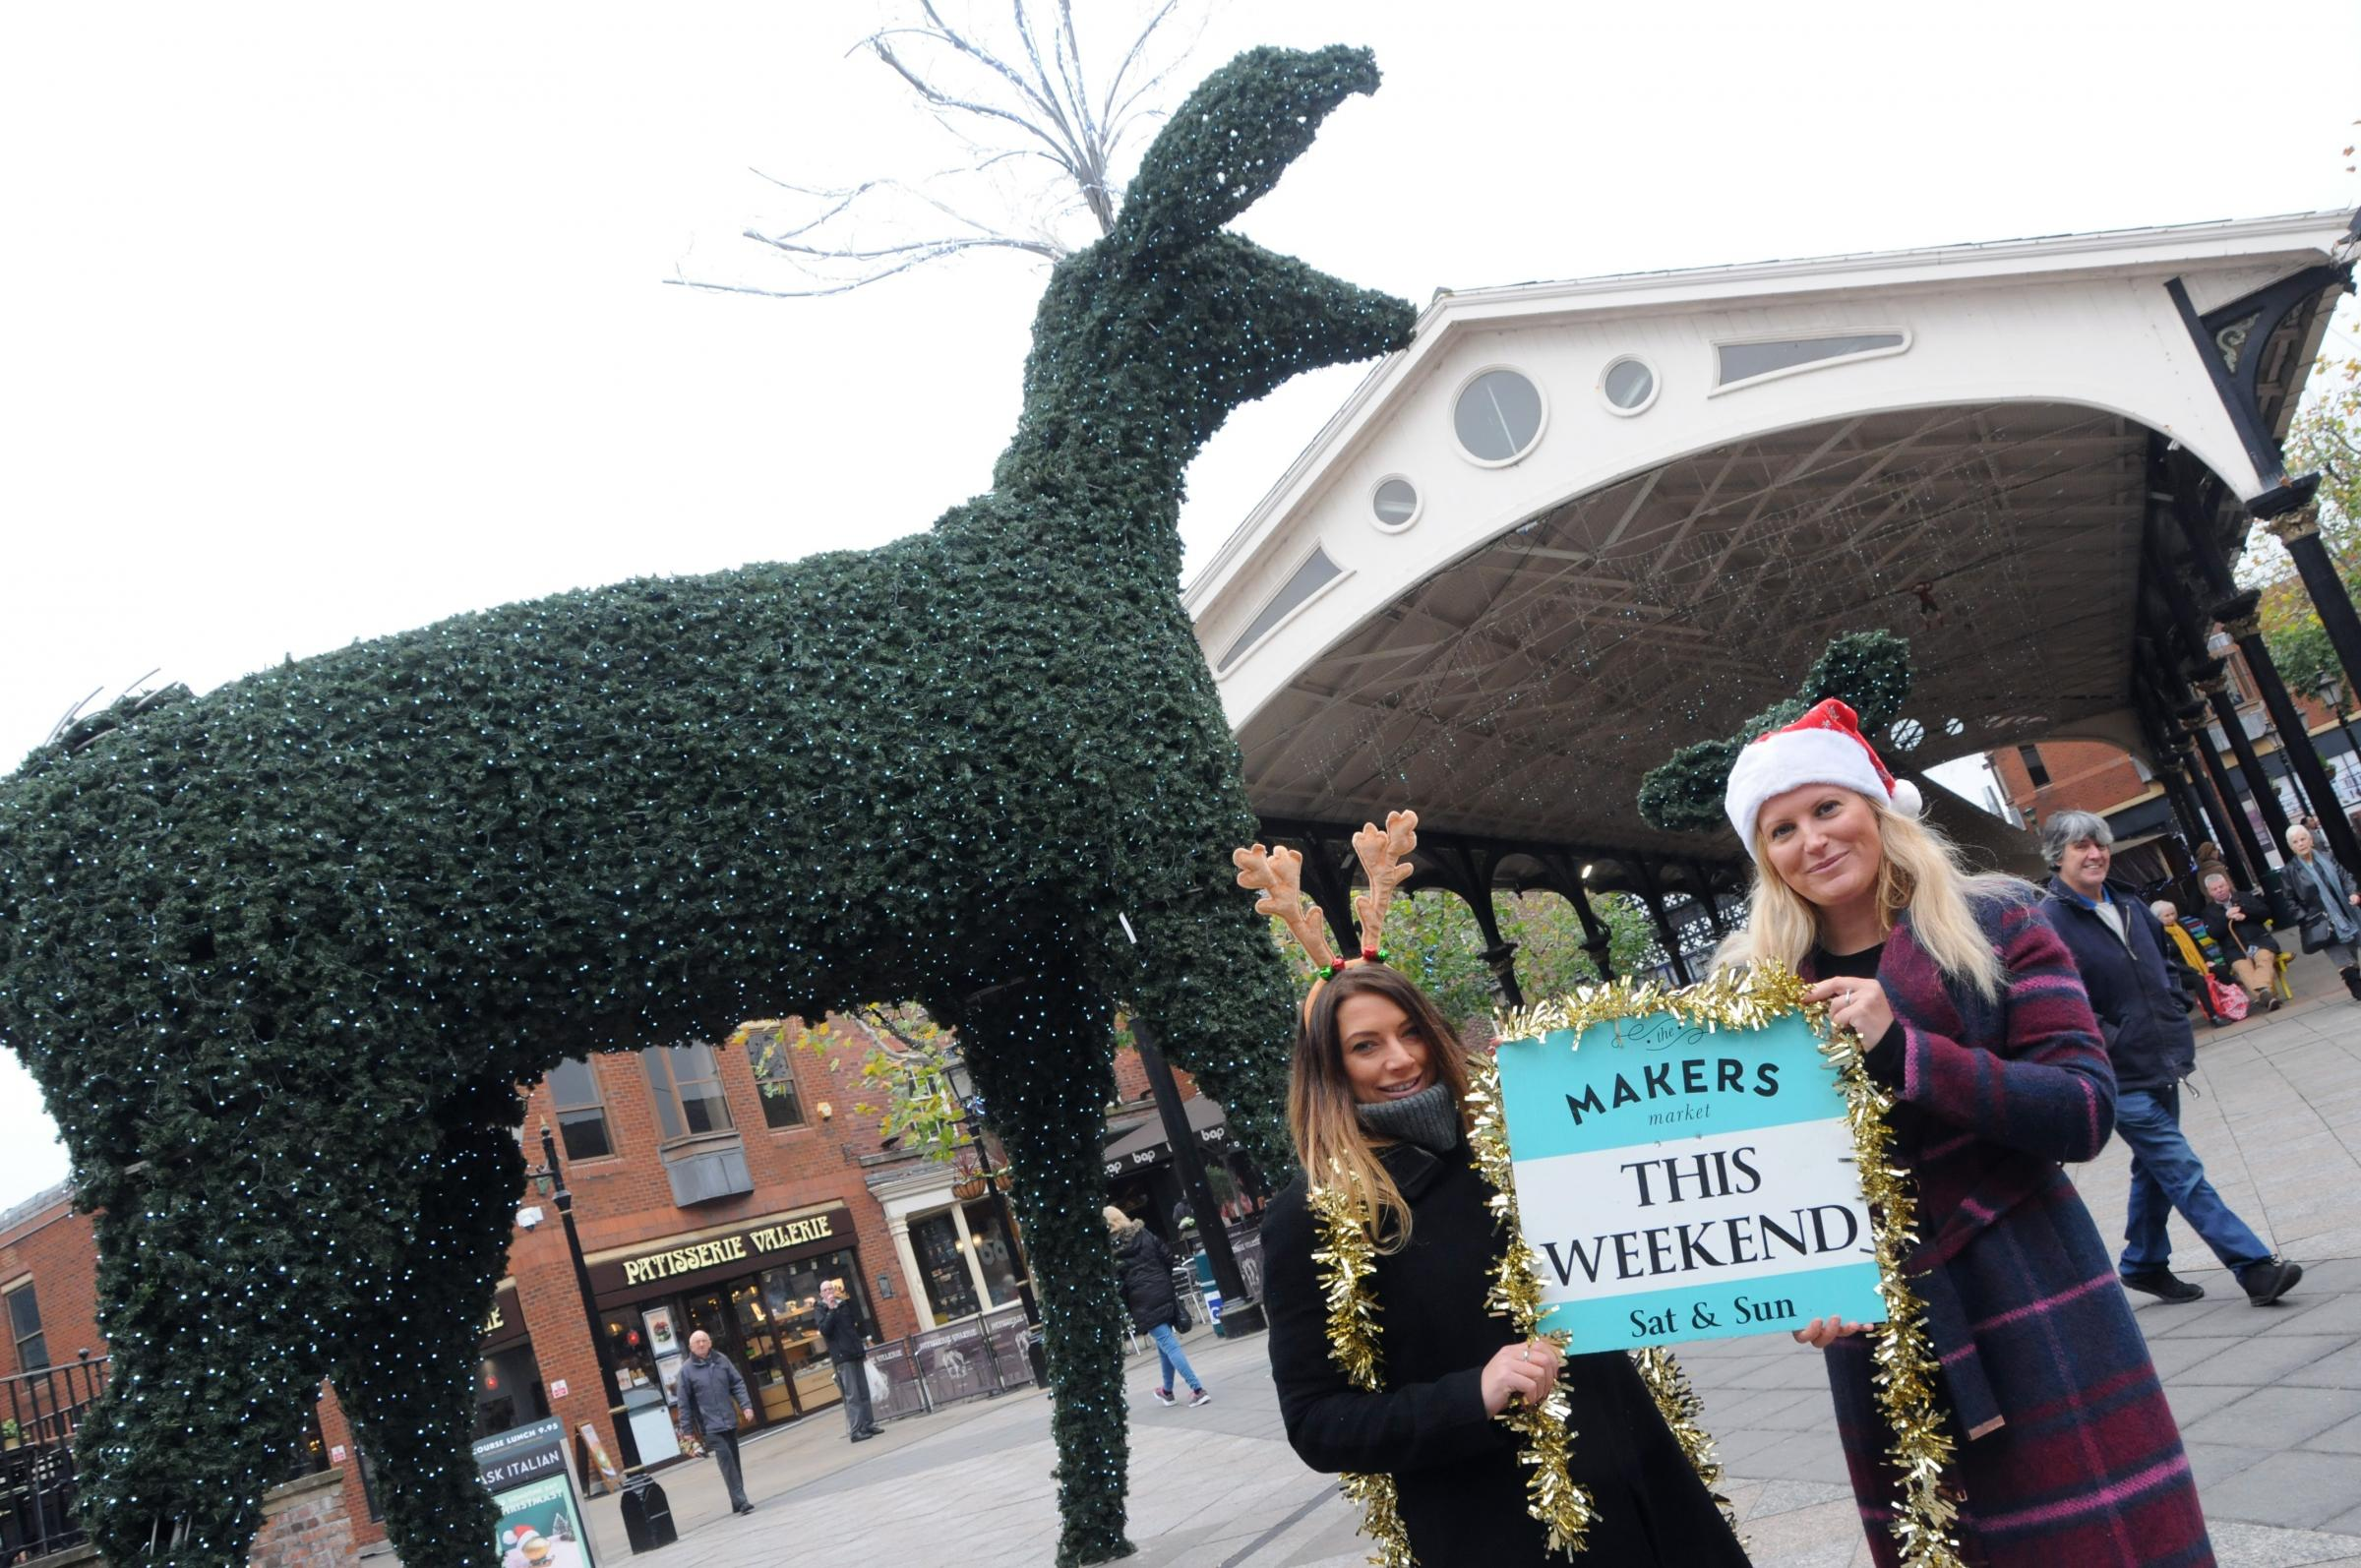 Pop-up Christmas market to take over town centre with 150 stalls this weekend